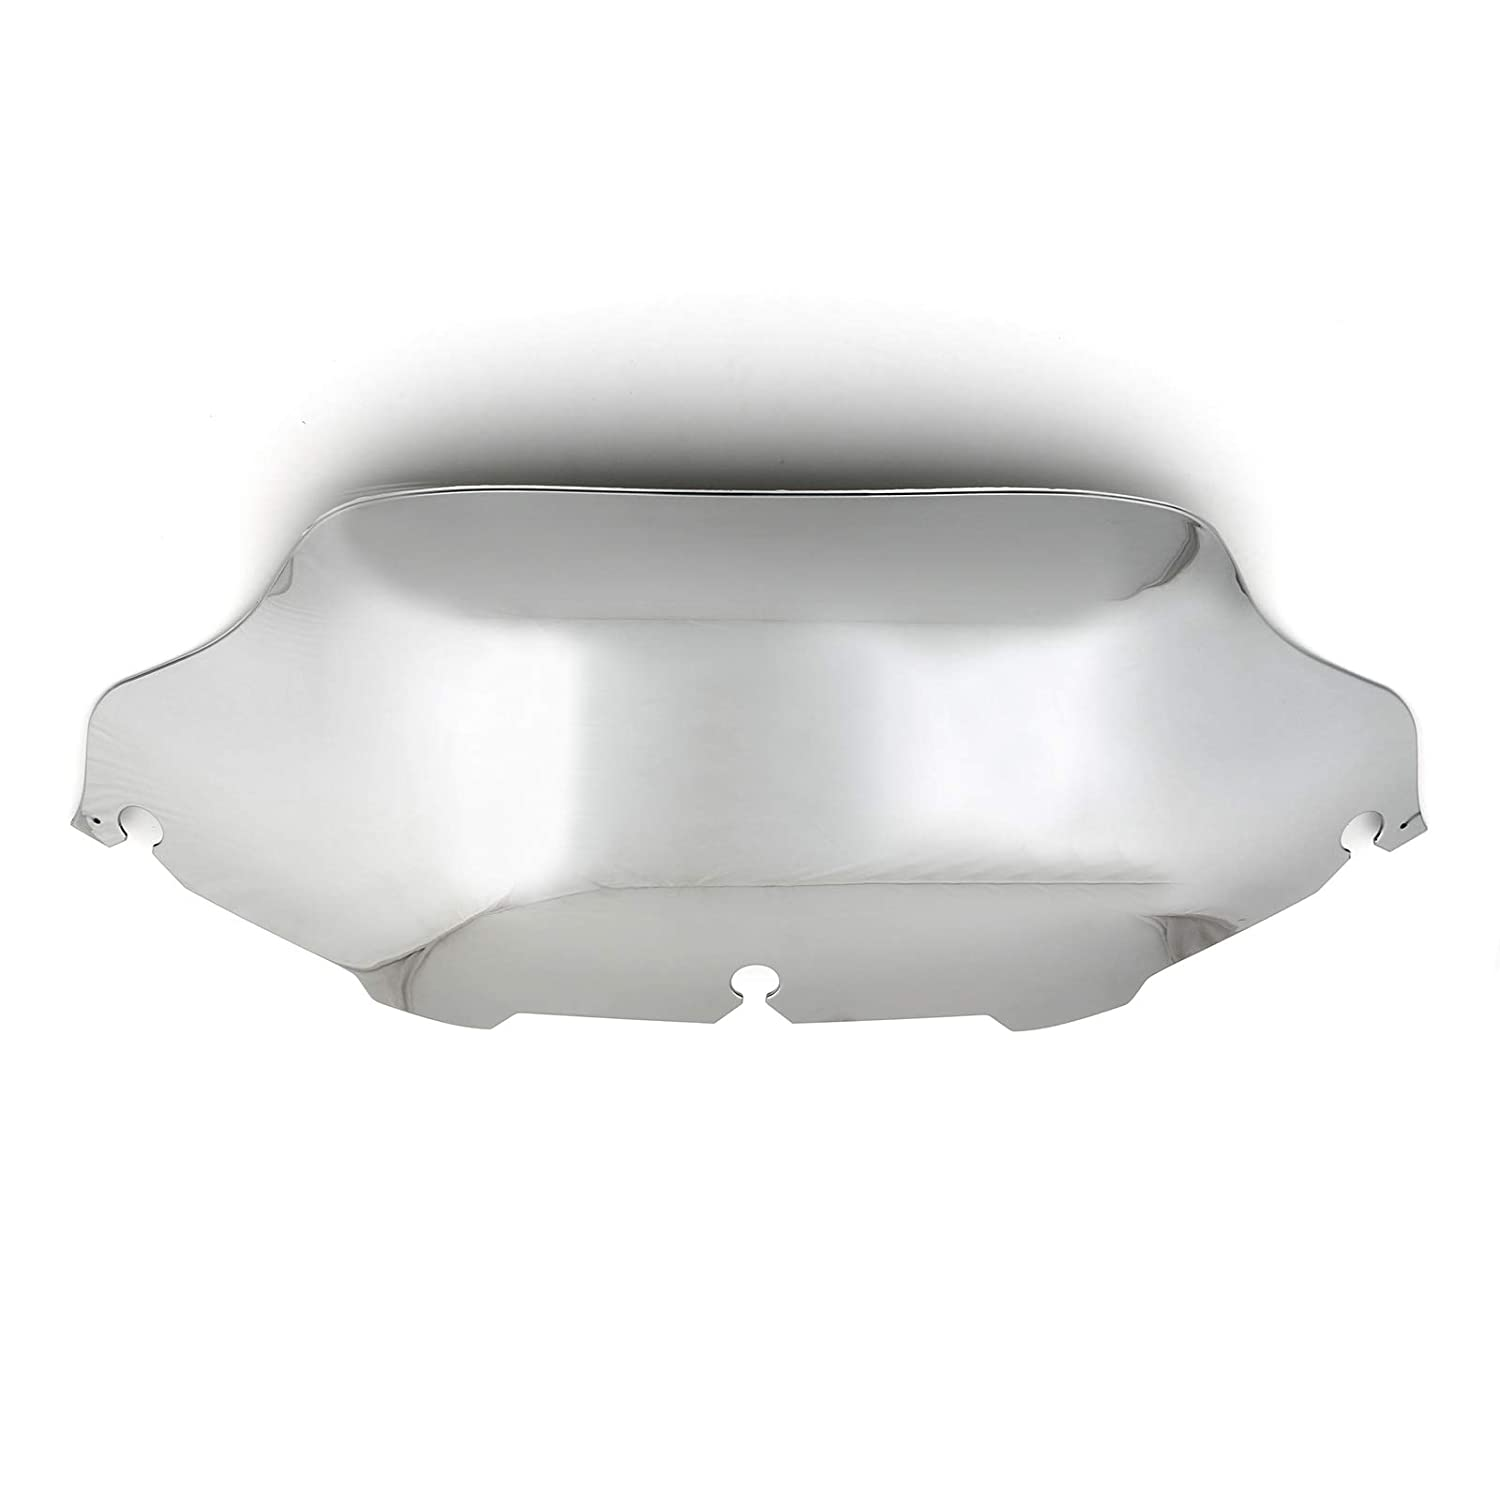 Areyourshop 4.5 6 8 Wave Windshield Windscreen For Harley Electra Street Glide Touring